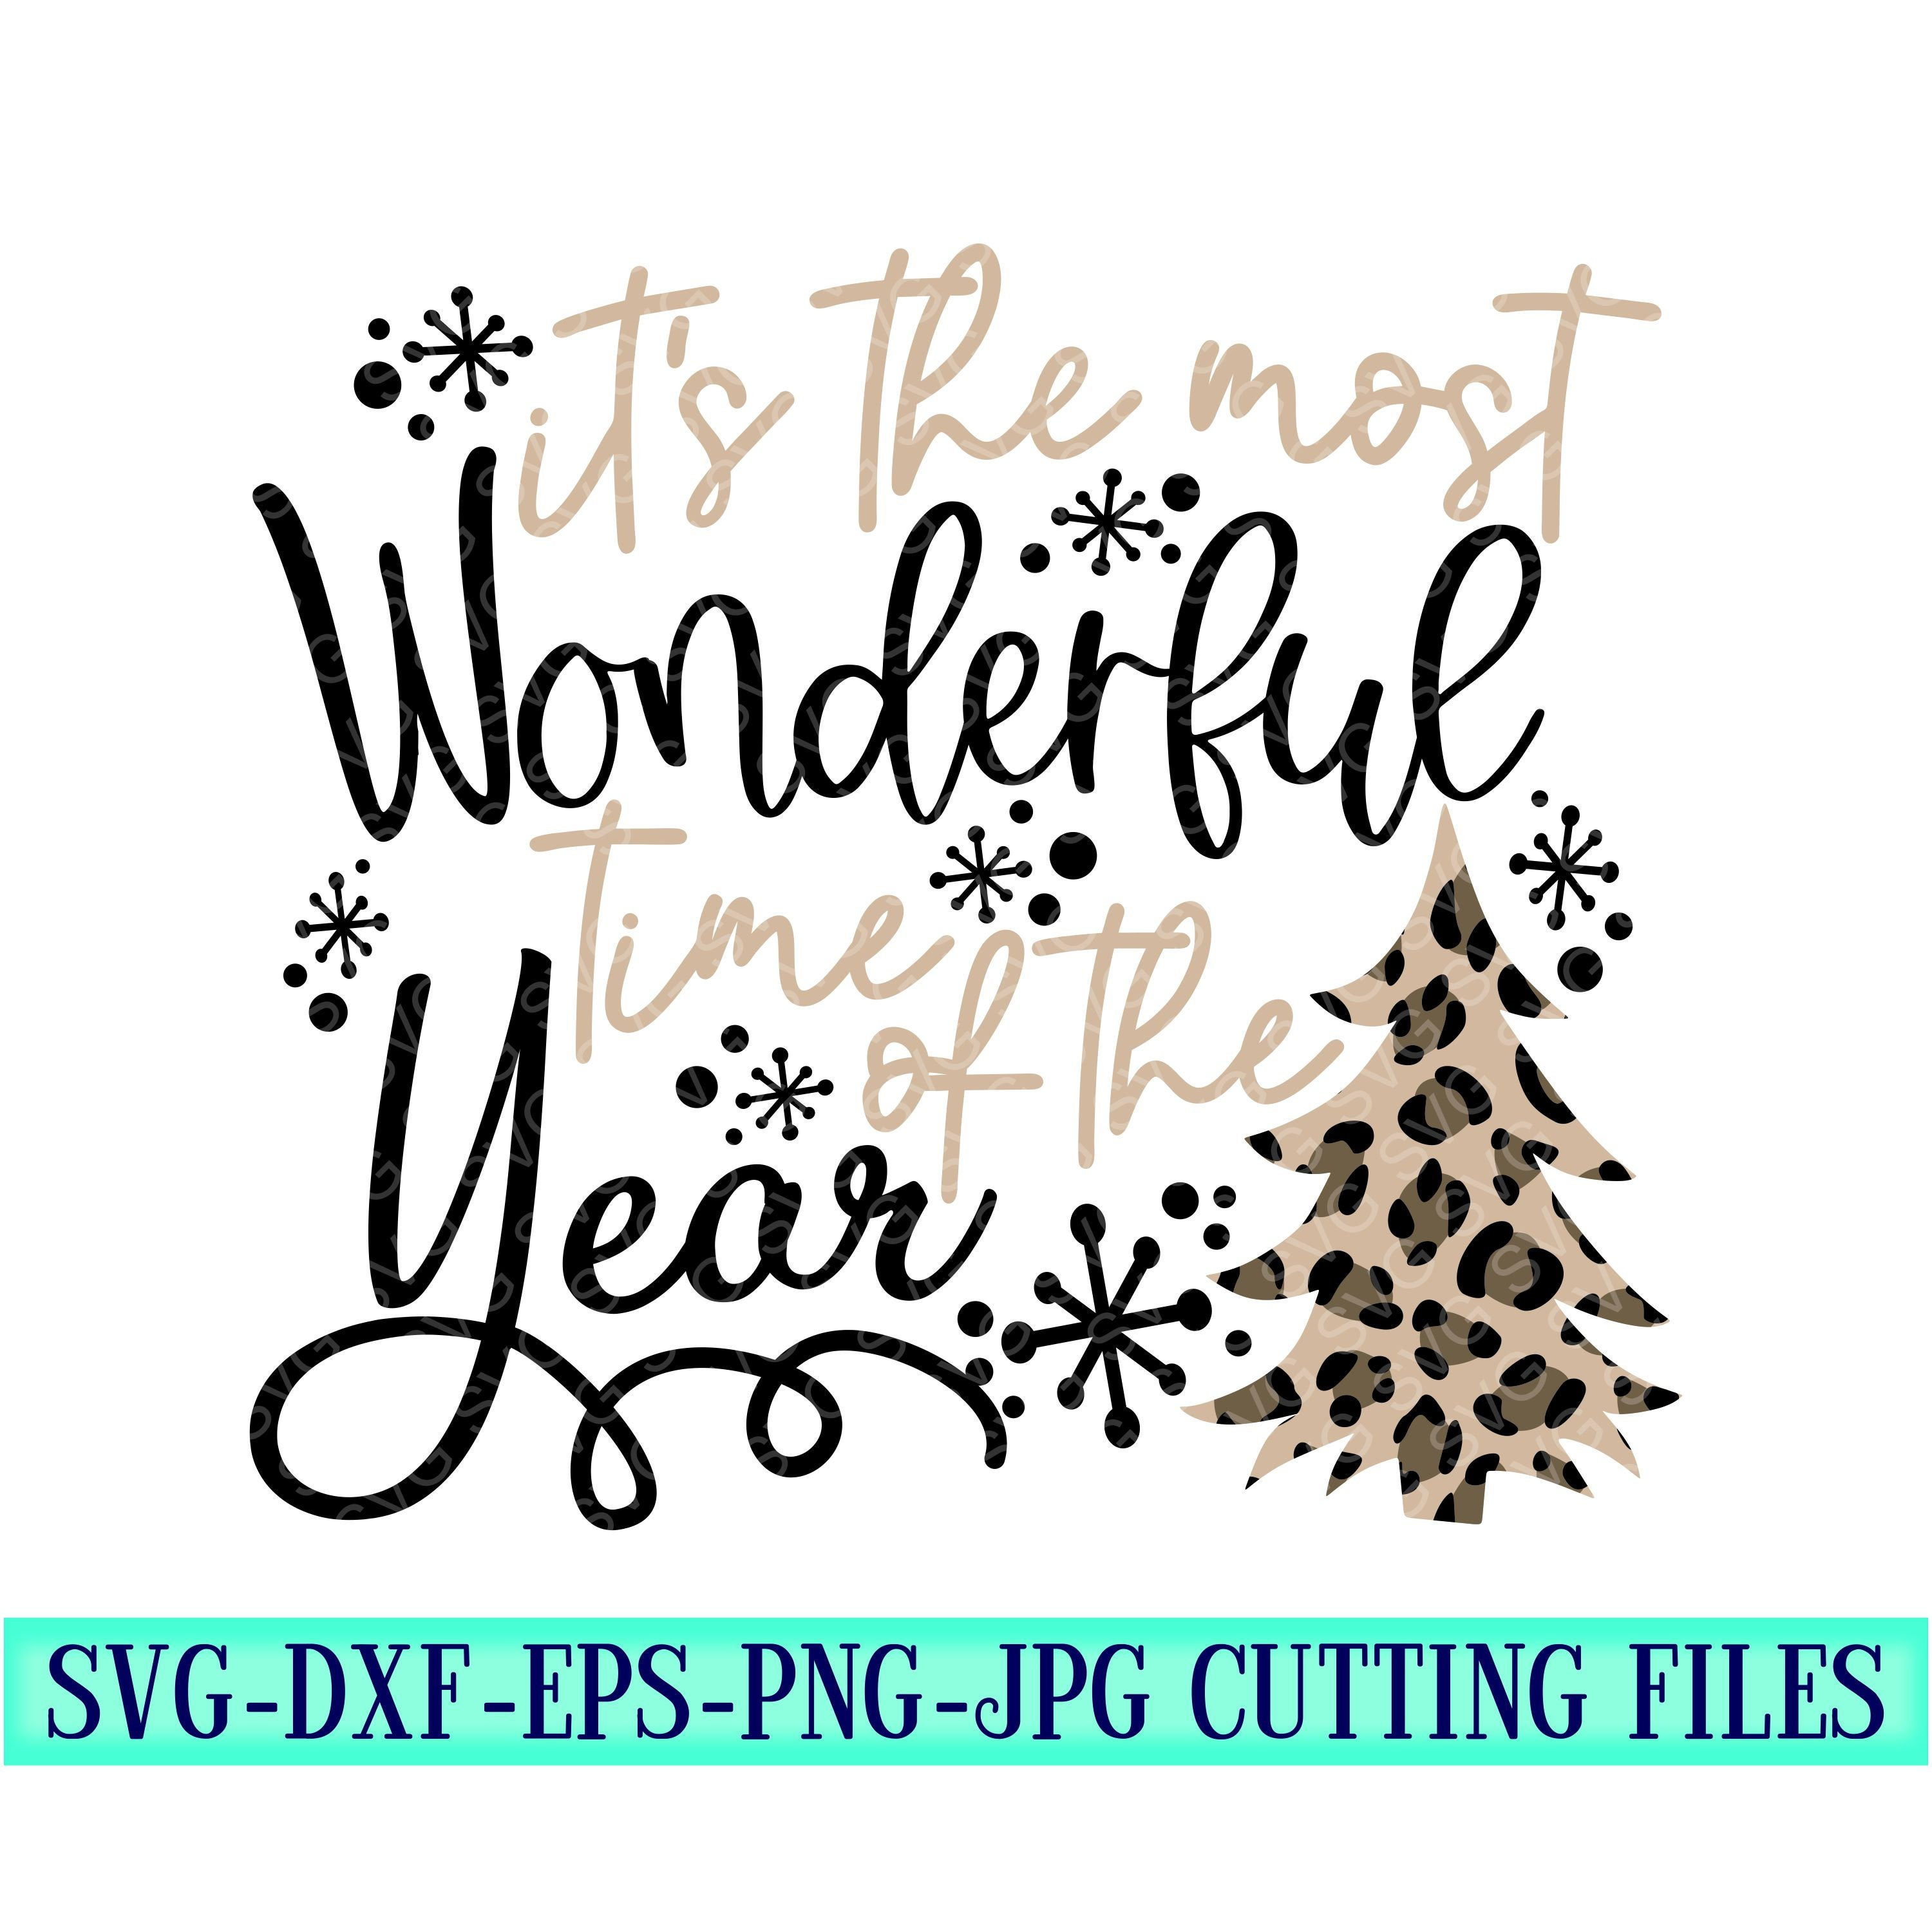 Most-wonderful-time-of-the-year-leopard-svg-leopard-christmas-tree-svg-christmas-svg-designs-christmas-cut-file-svg-for-cricut-5fa09293